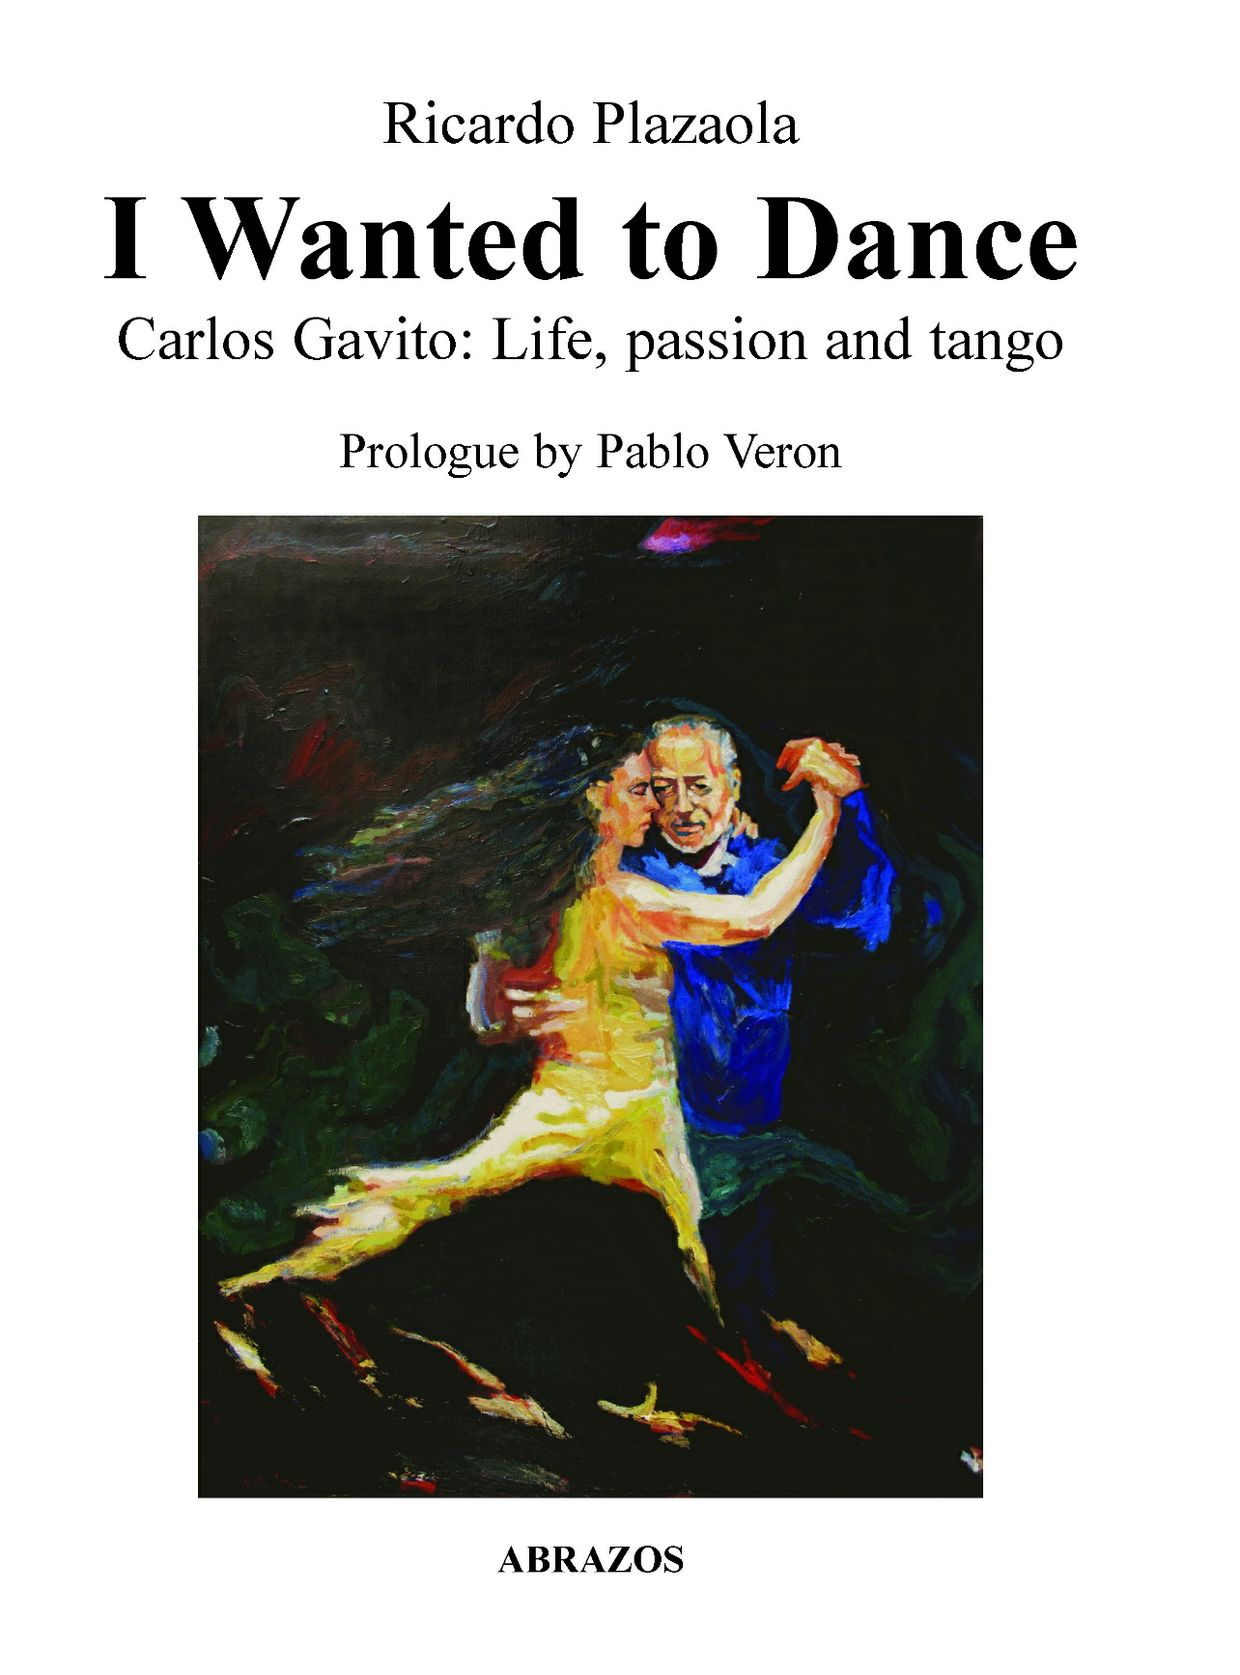 I wanted to dance Carlos Gavito epub